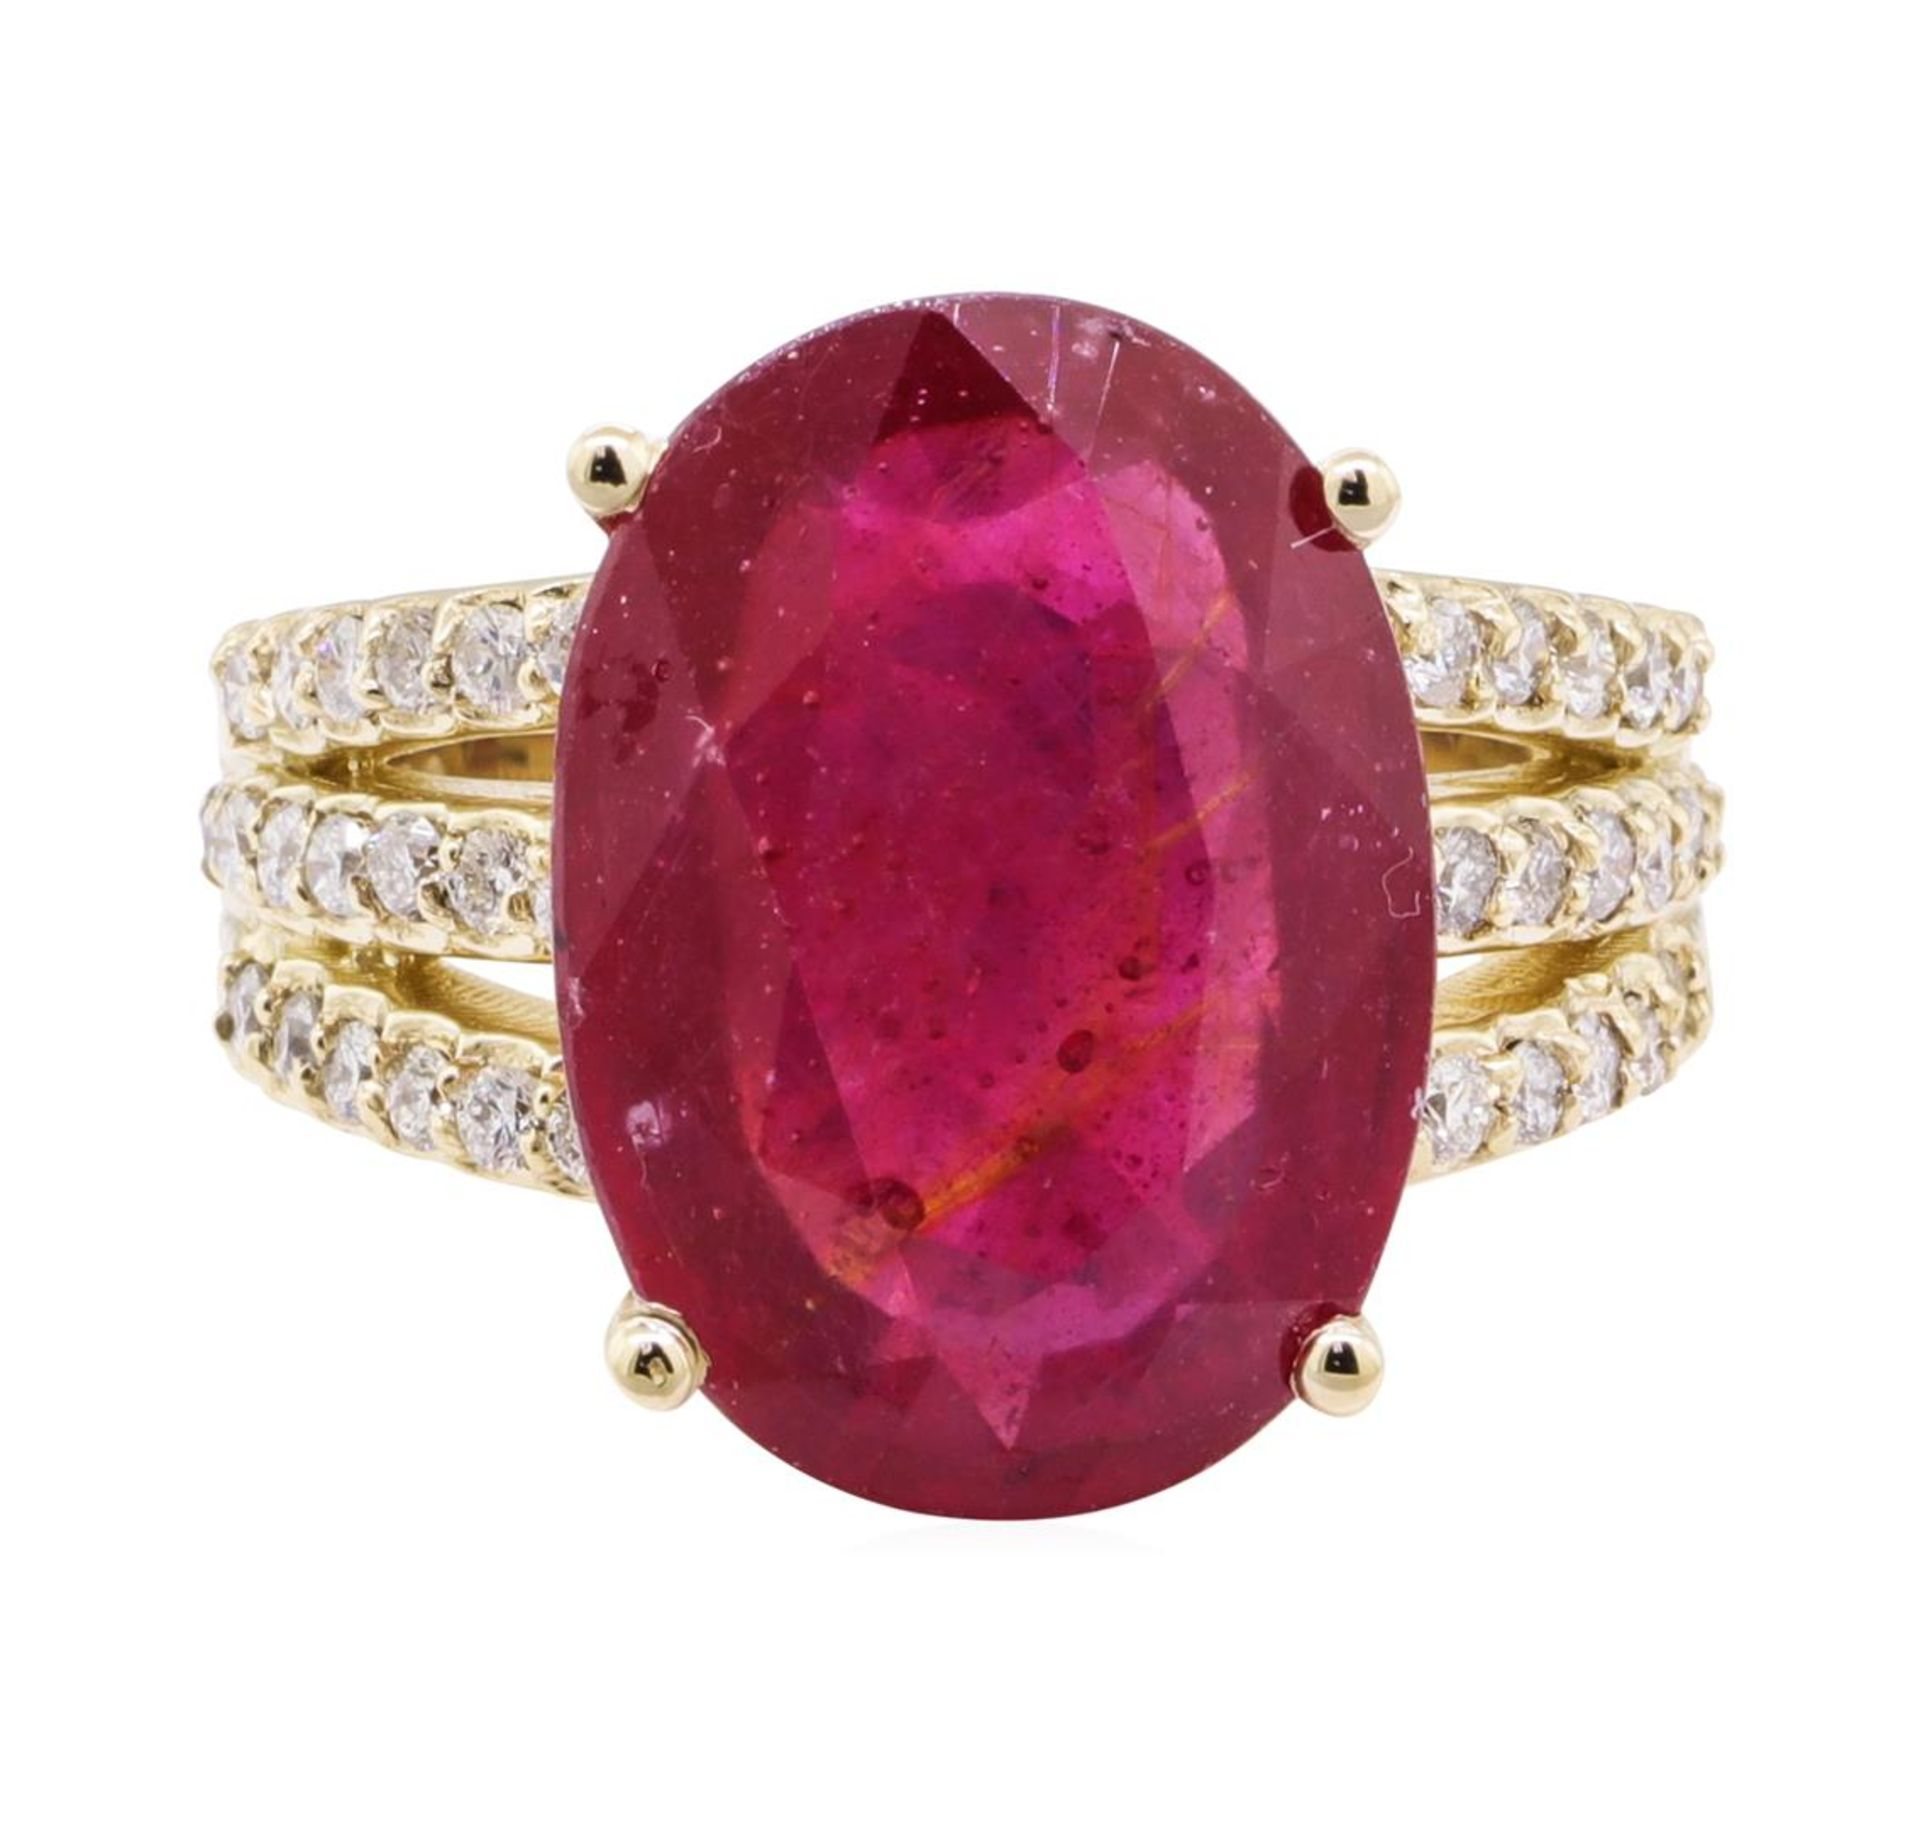 11.80 ctw Ruby And Diamond Ring - 14KT Yellow Gold - Image 2 of 5